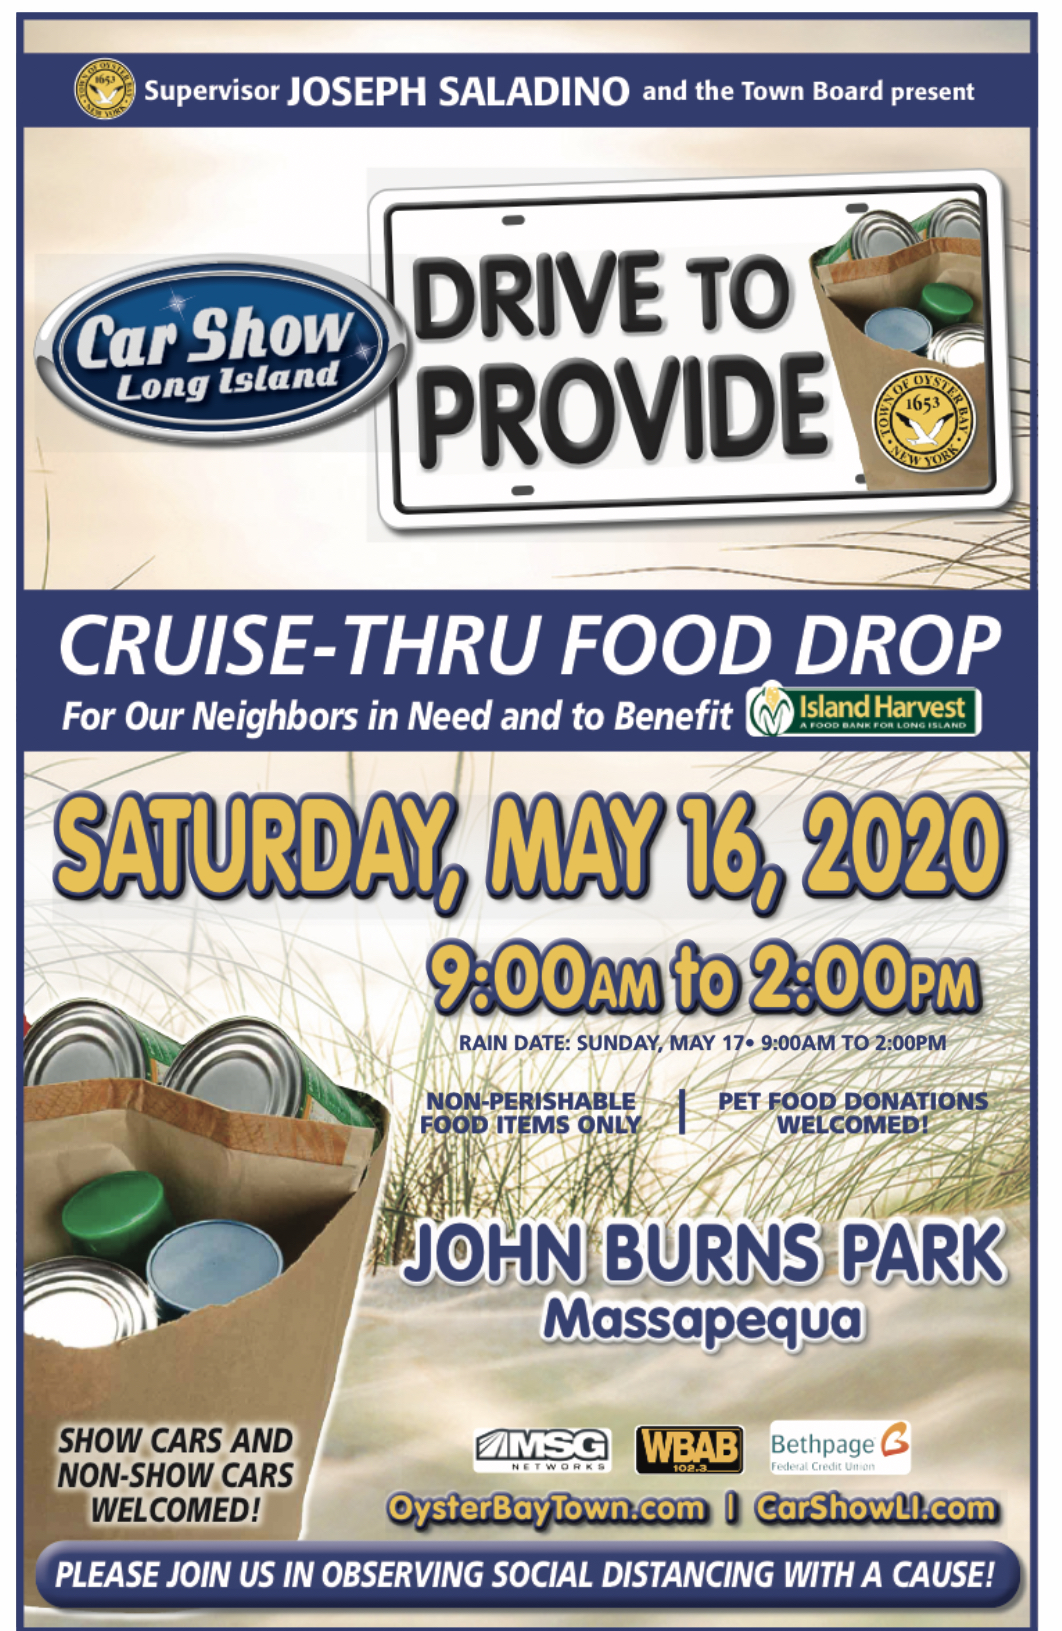 Saladino Announces Cruise Thru Food Drop Collection Drive for May 16th